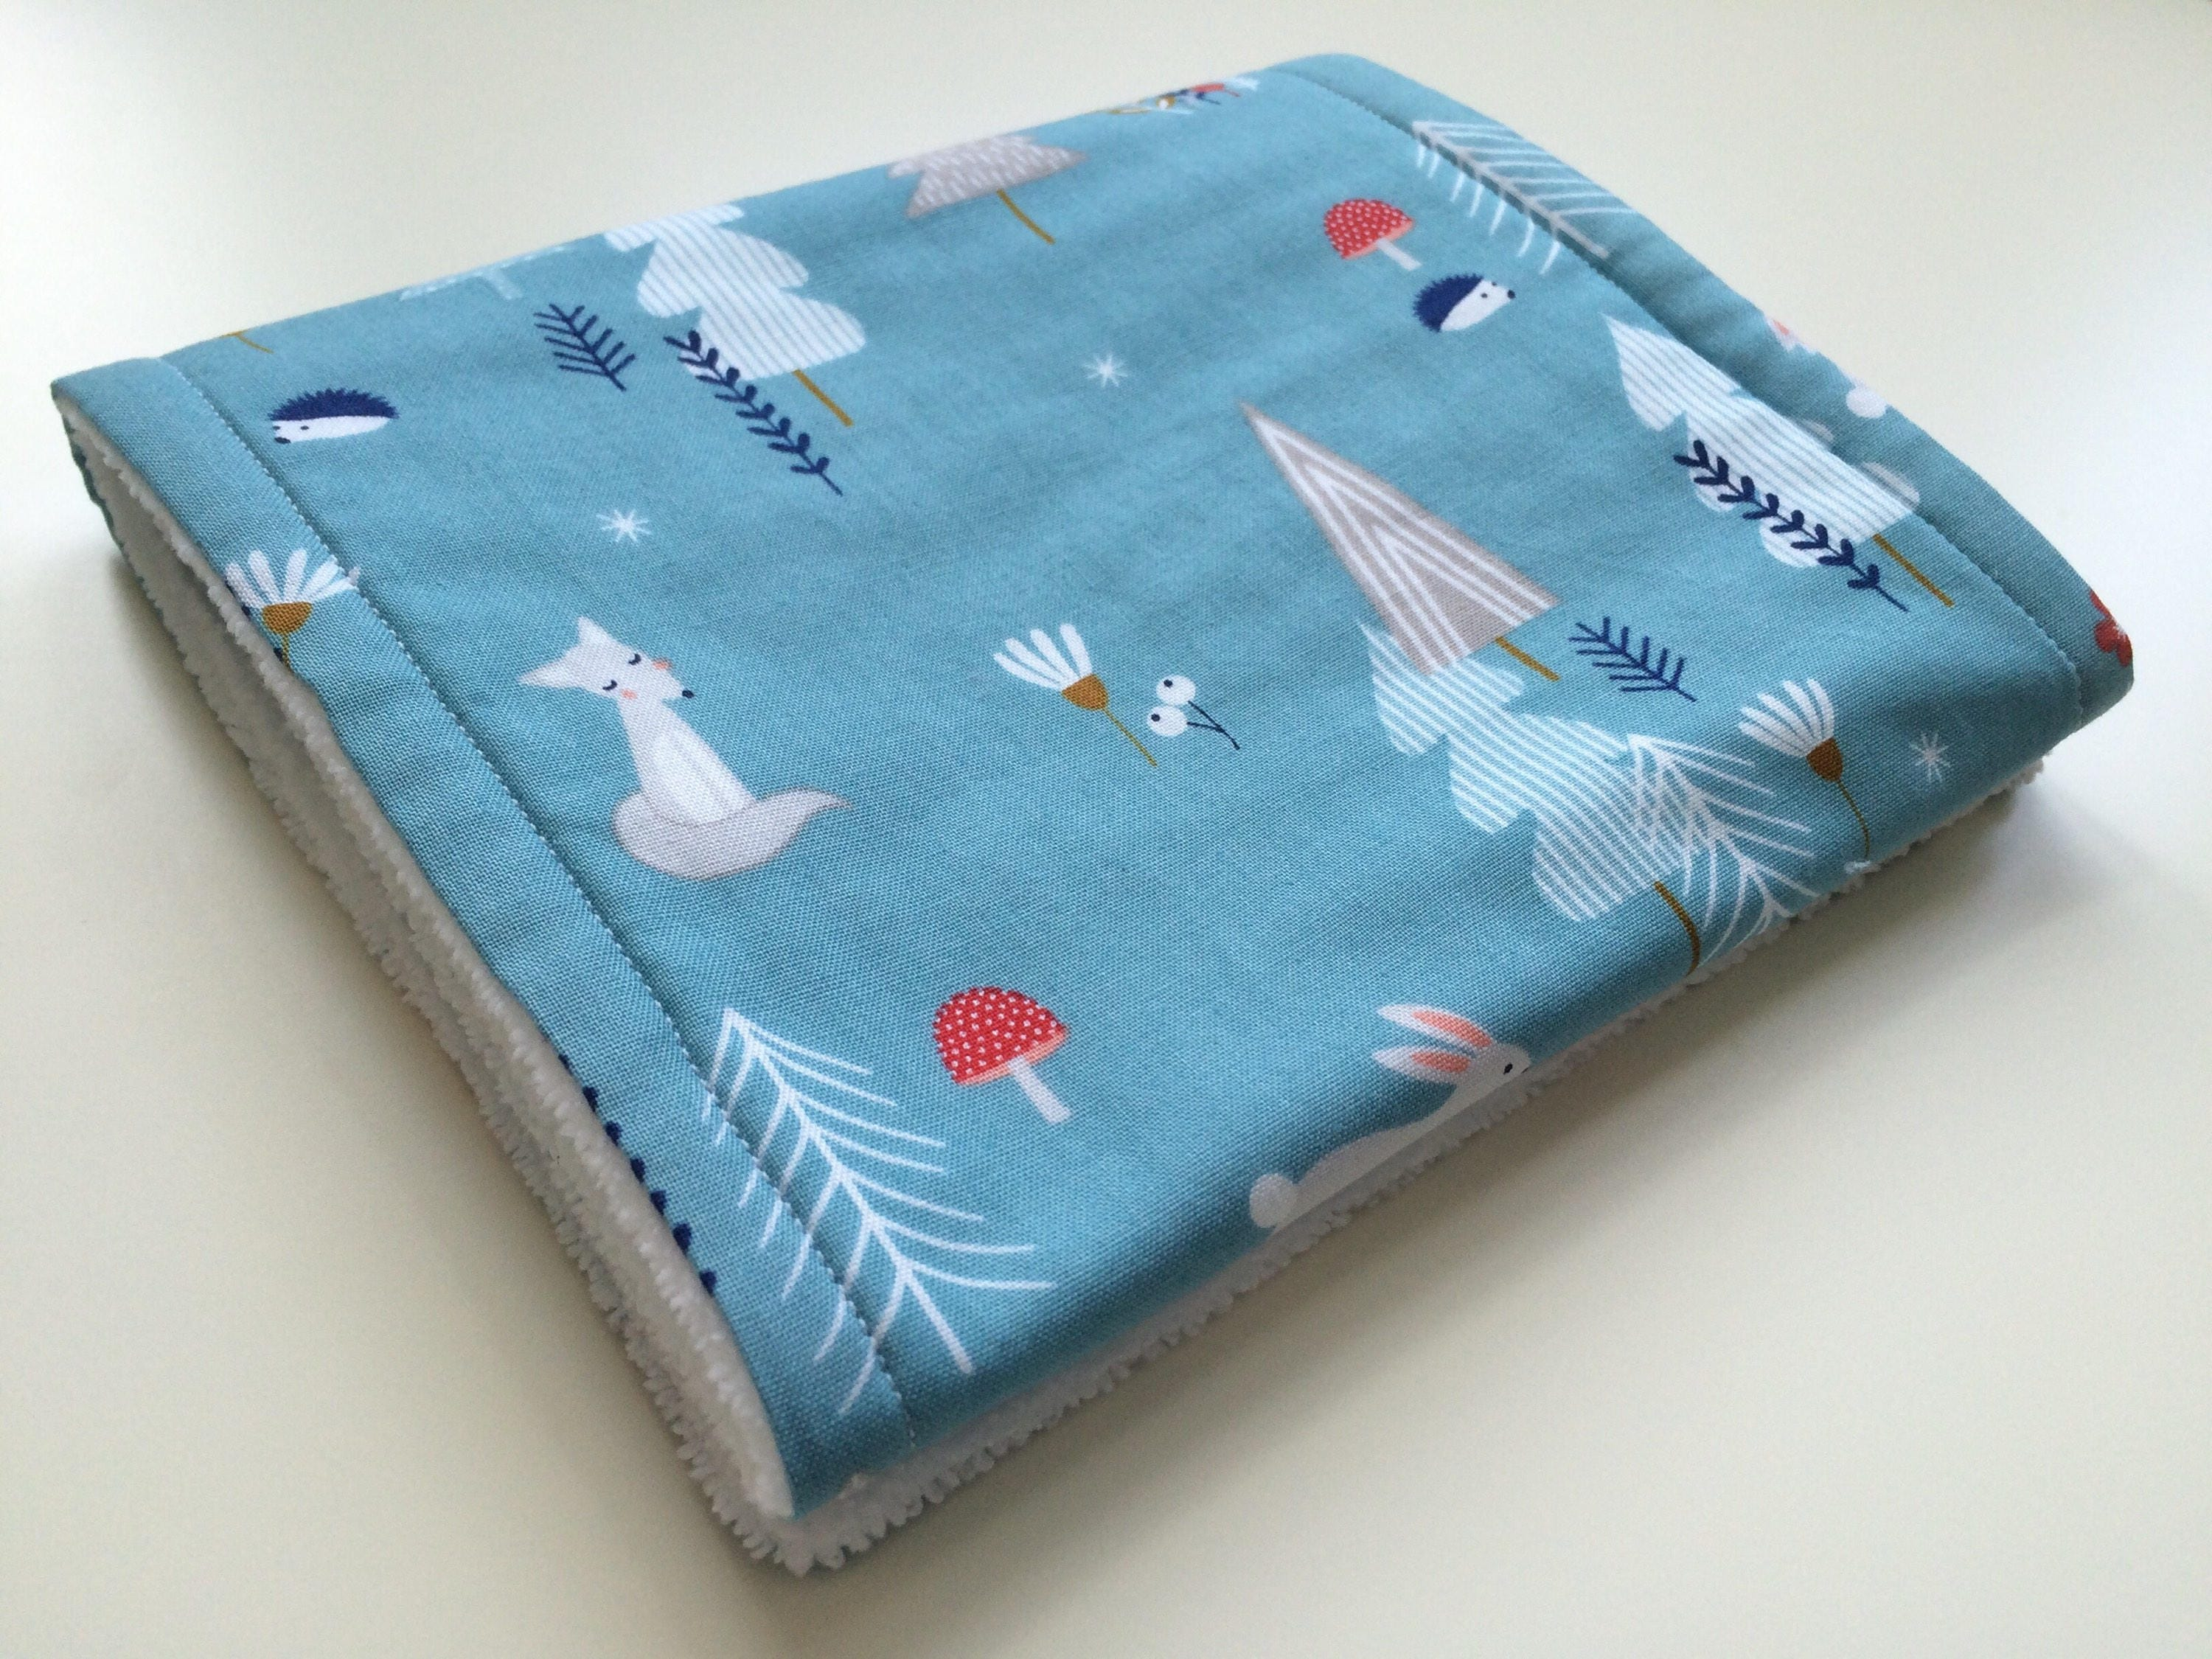 Burp Cloths 3 Animal Print in Blues Toweling Backed GREAT GIFT IDEA!!